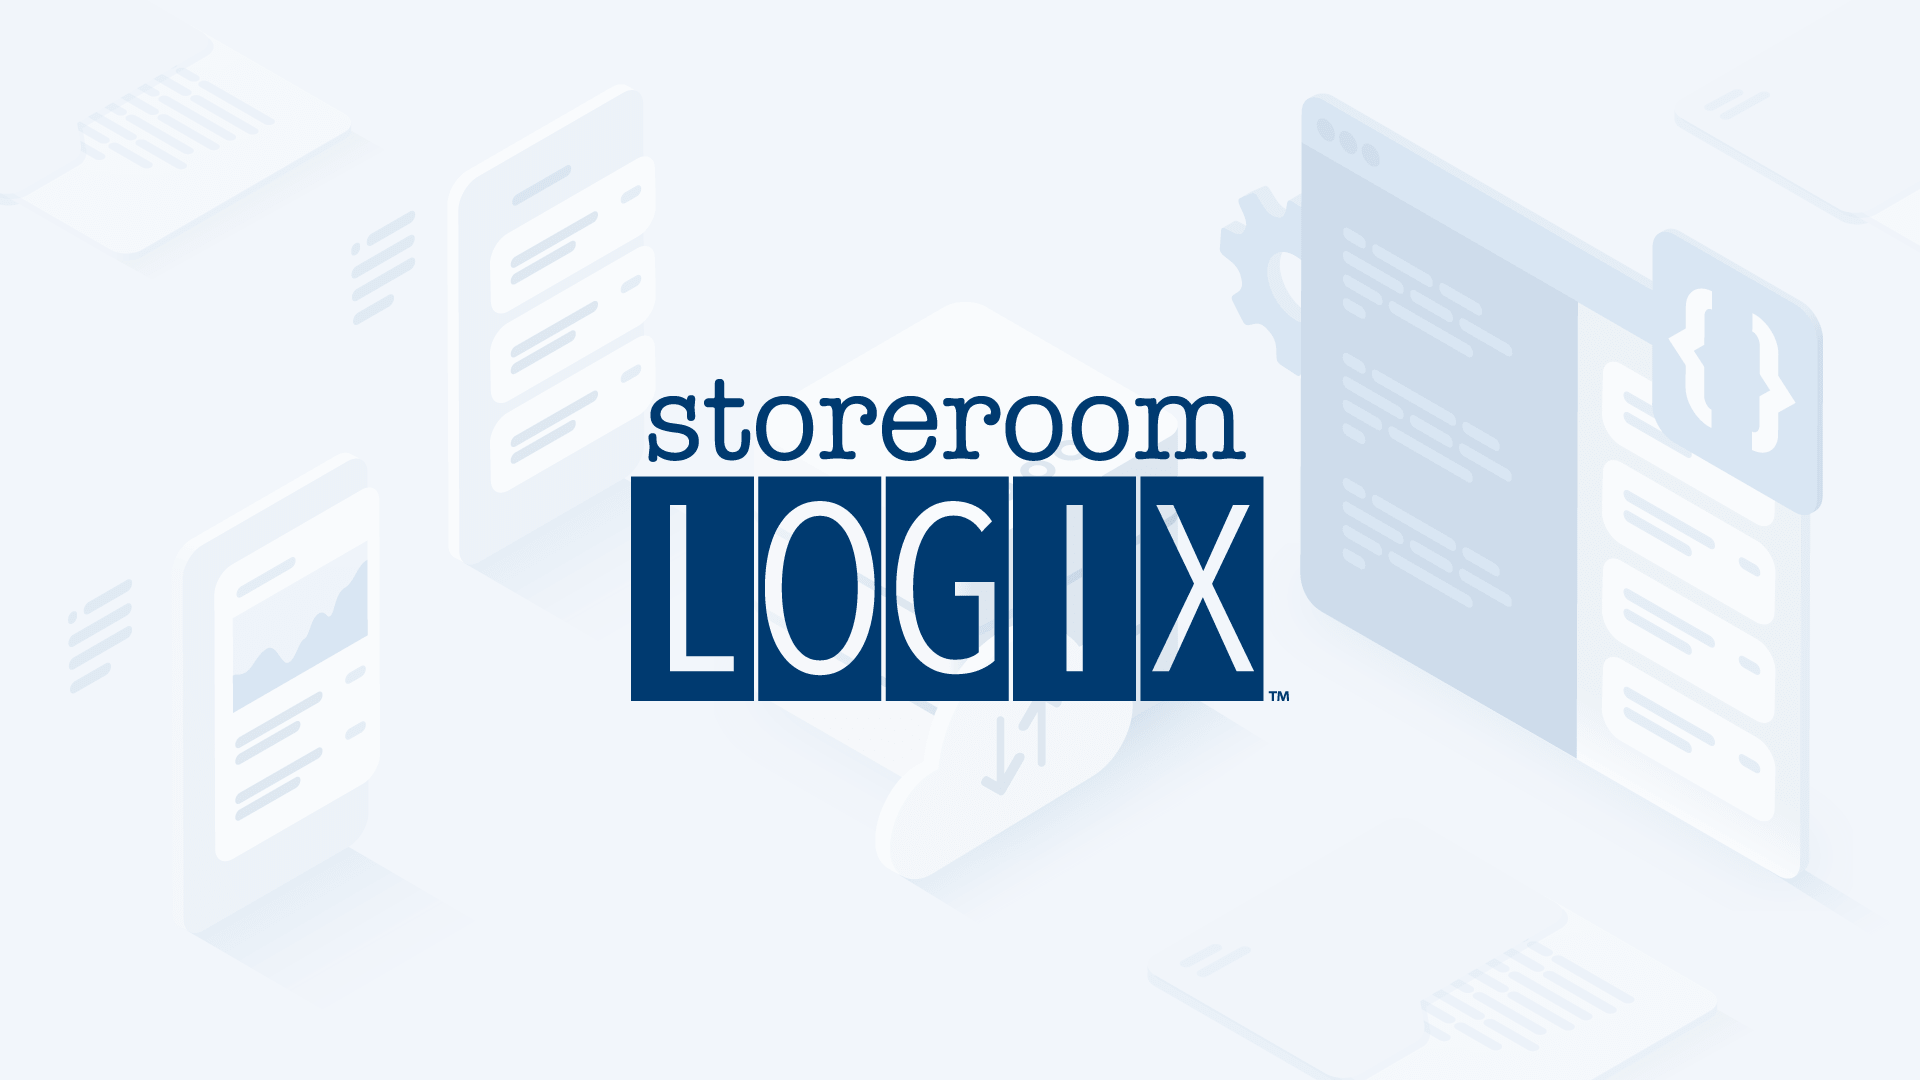 Storeroom Logix — How we helped to create the most advanced VMI platform in the world